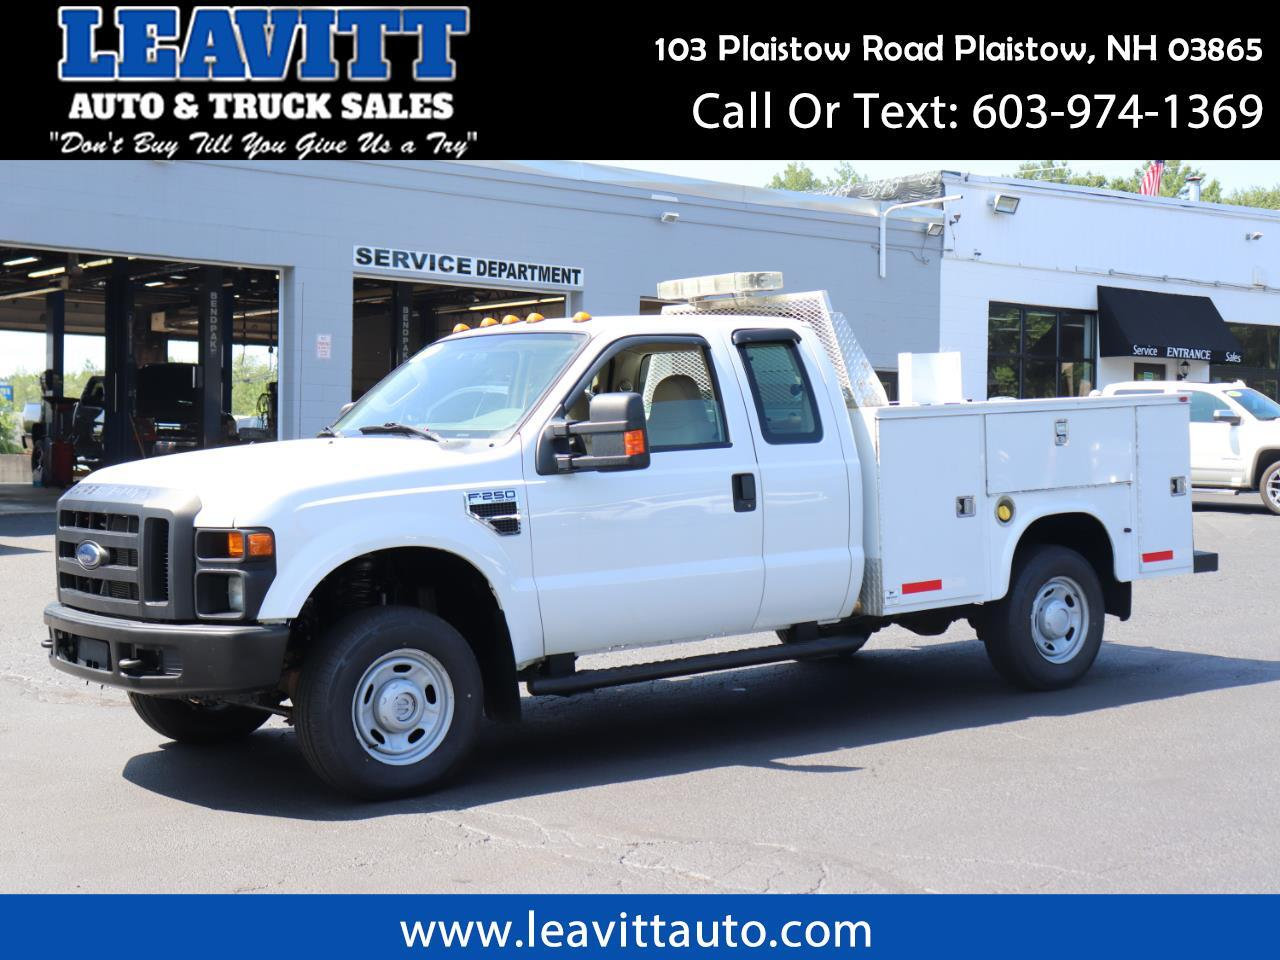 2010 Ford F-250 SD SUPER CAB UTILITY BODY 113K MILES 4X4